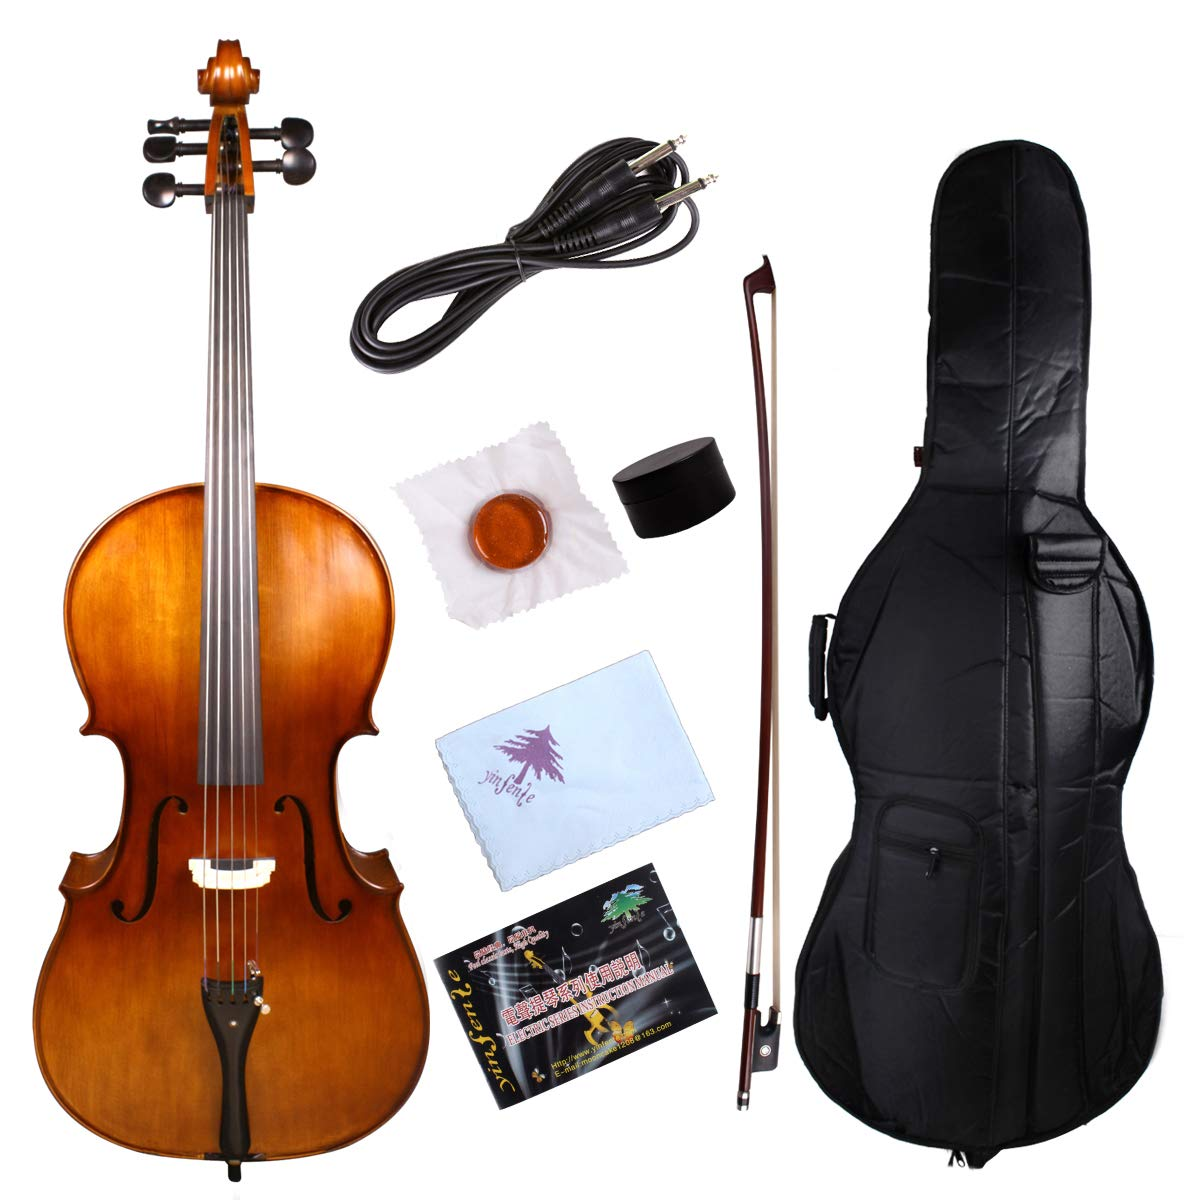 Yinfente 5String Electric Acoustic Cello 4/4 Solid Maple Spruce wood Ebony Fittings Sweet Sound With Cello Bag Bow by yinfente